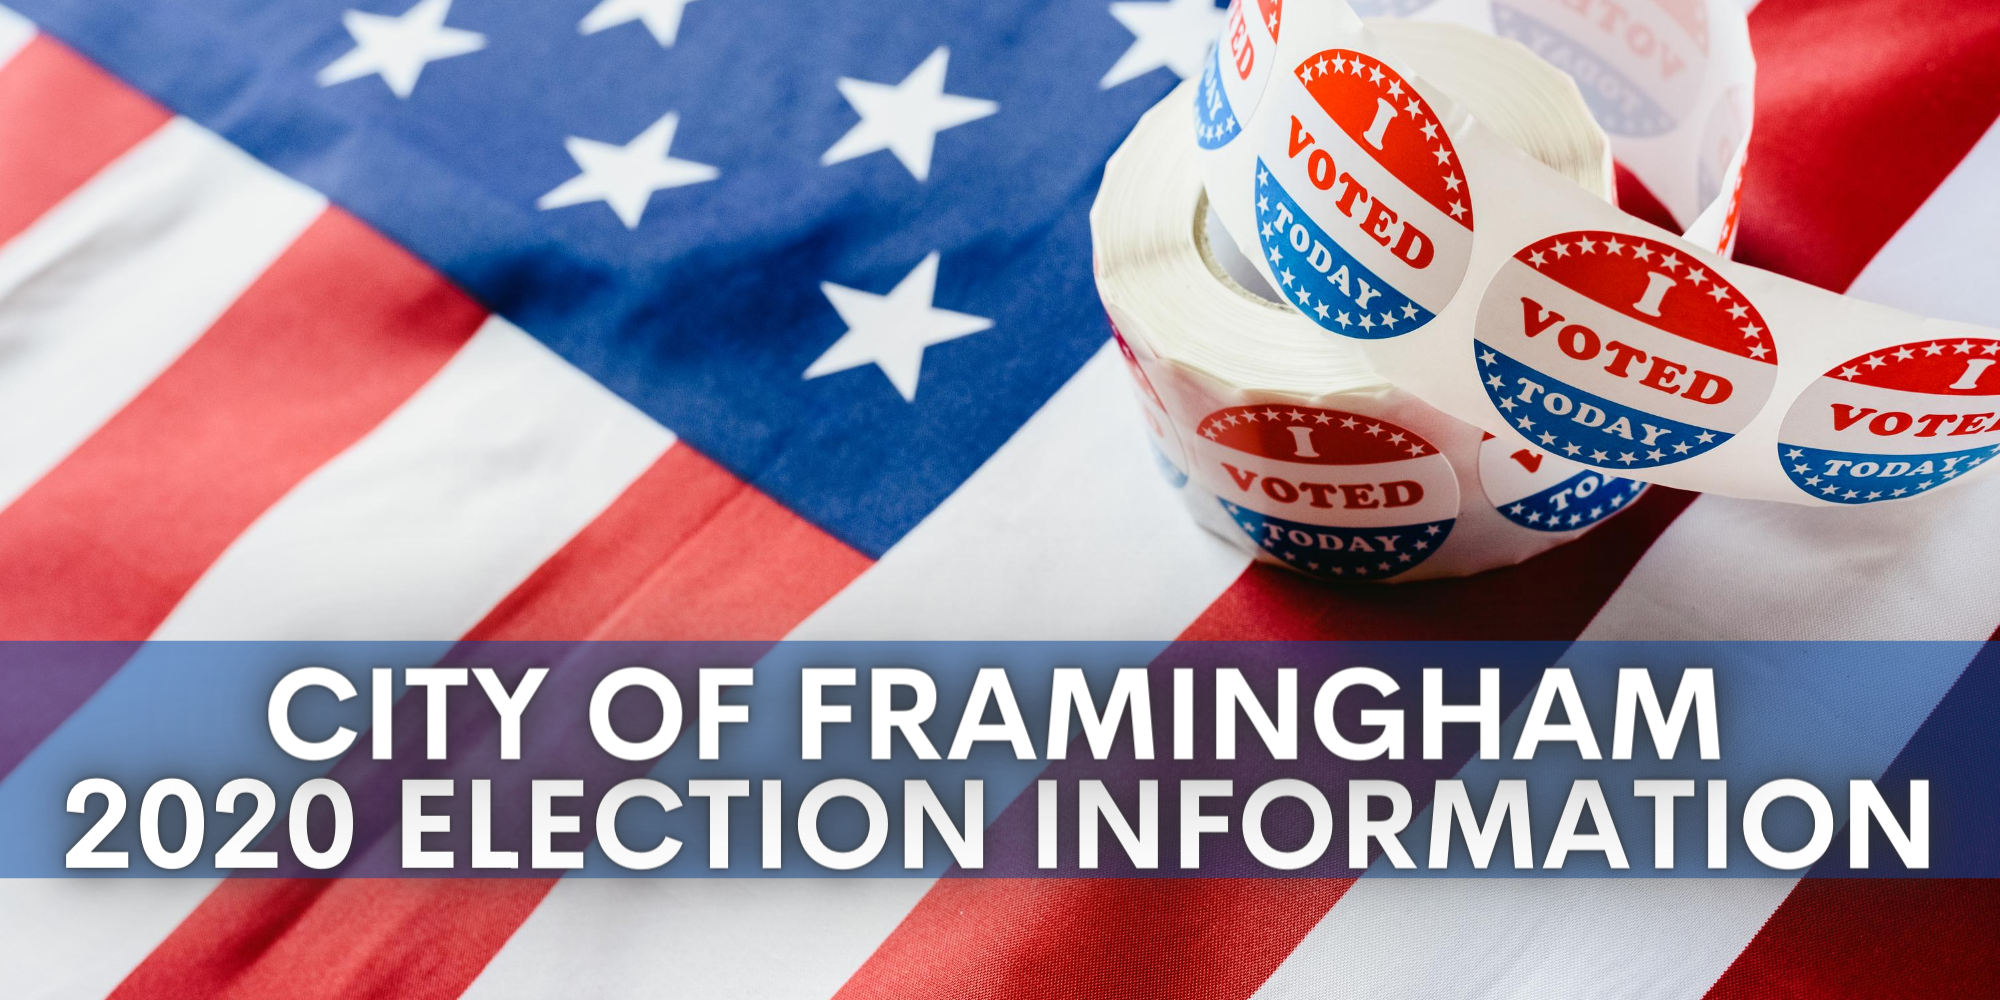 Text: City of Framingham 2020 Election Information, Image of an American Flag and I voted sticker